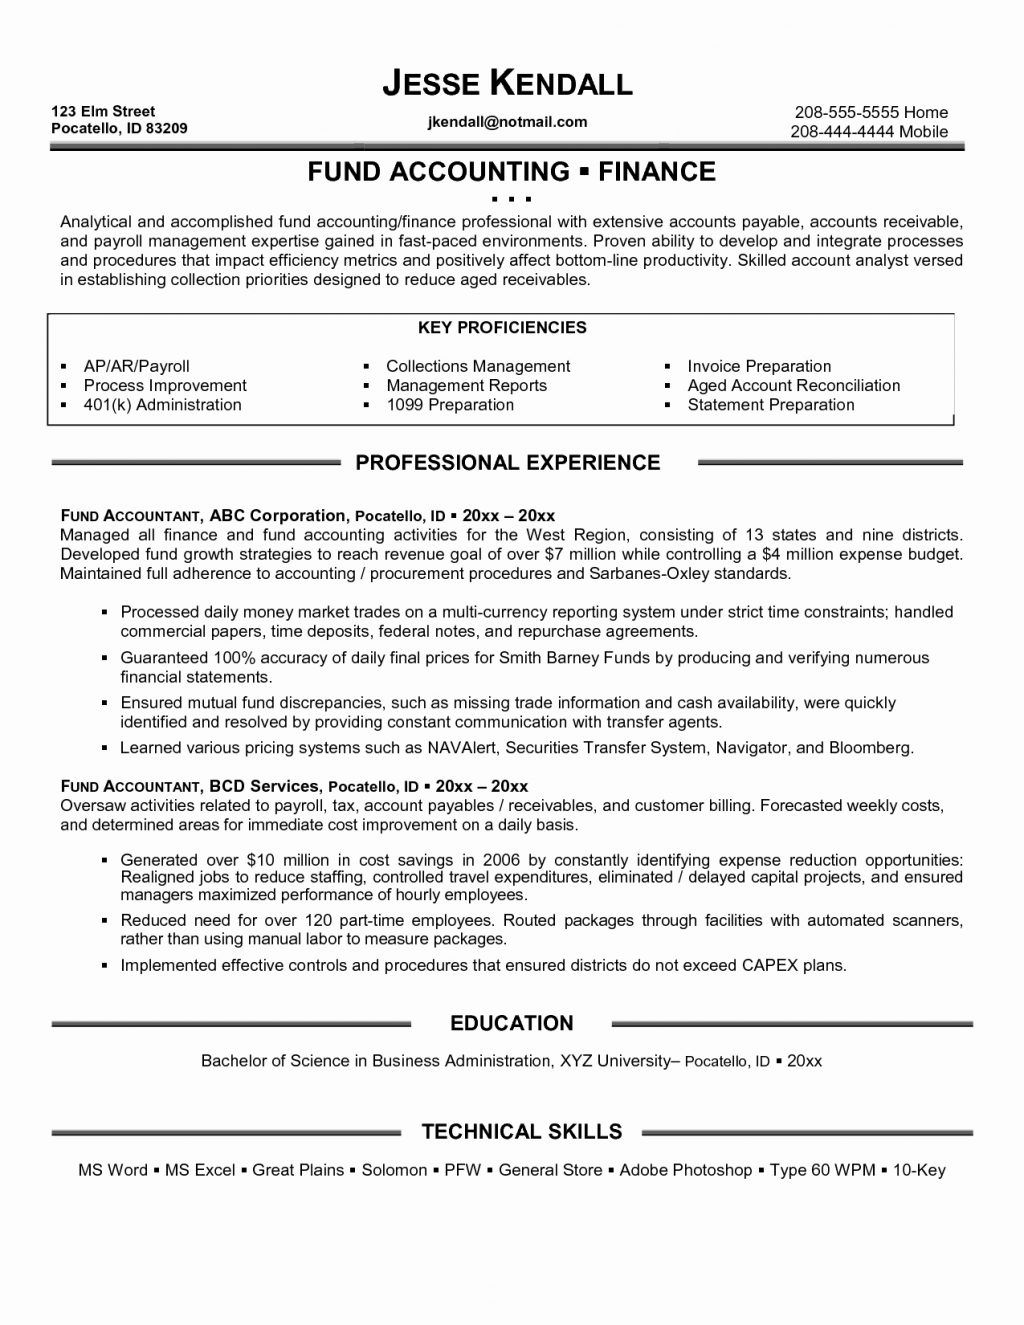 Accounts Payable And Receivable Resume Captivating Staff Accountant Resume Summary Best Staff Accountant Resume Exle .